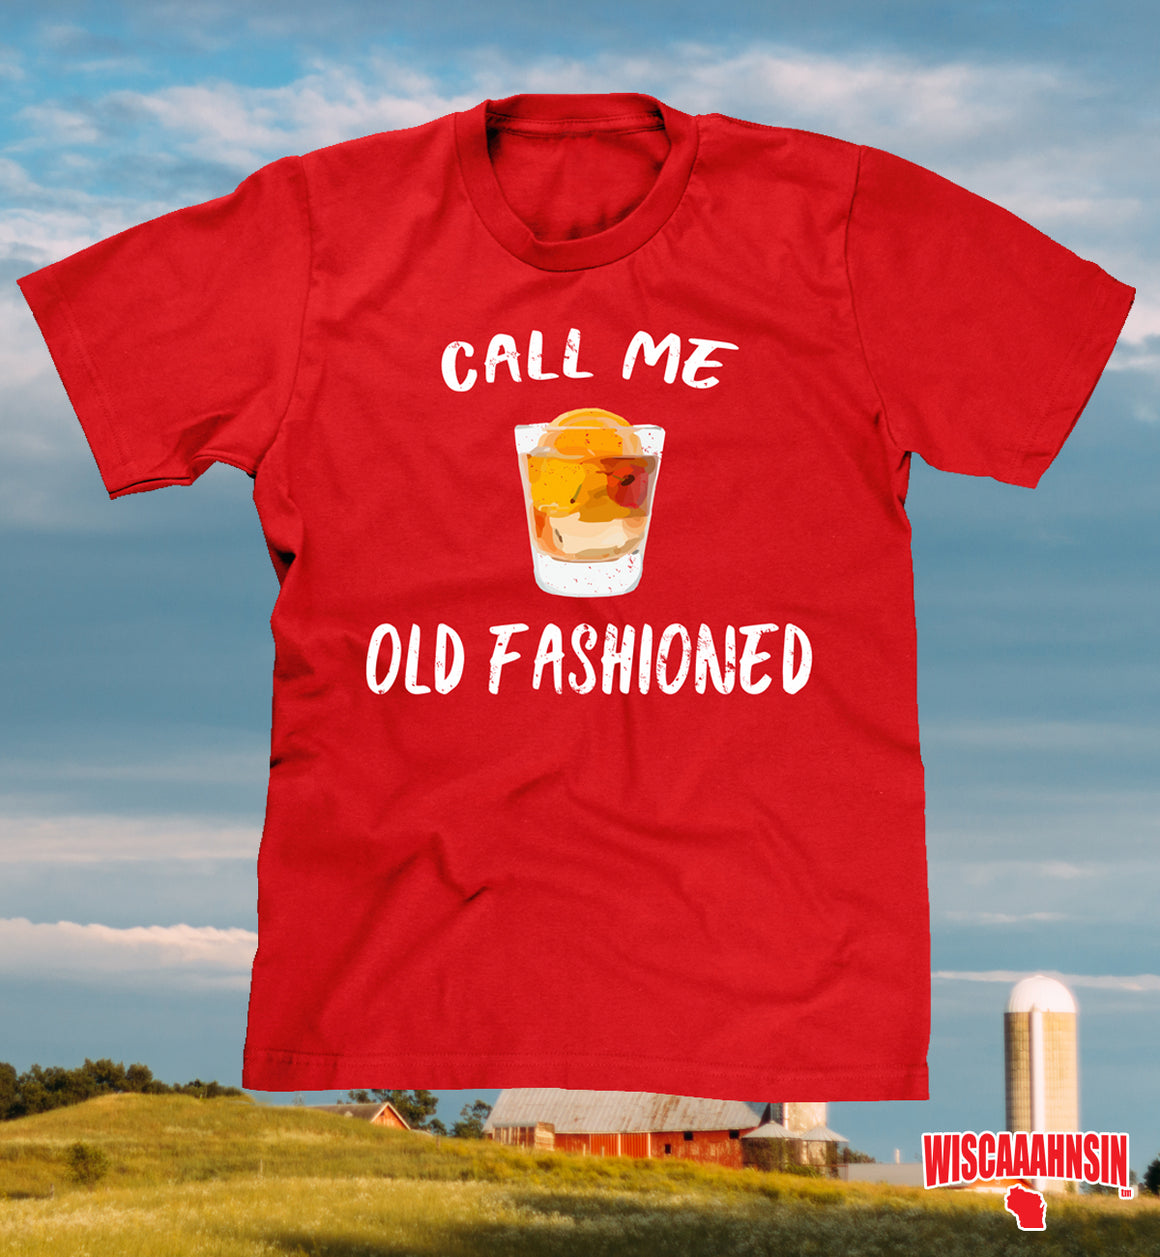 wisconsin old fashioned shirt